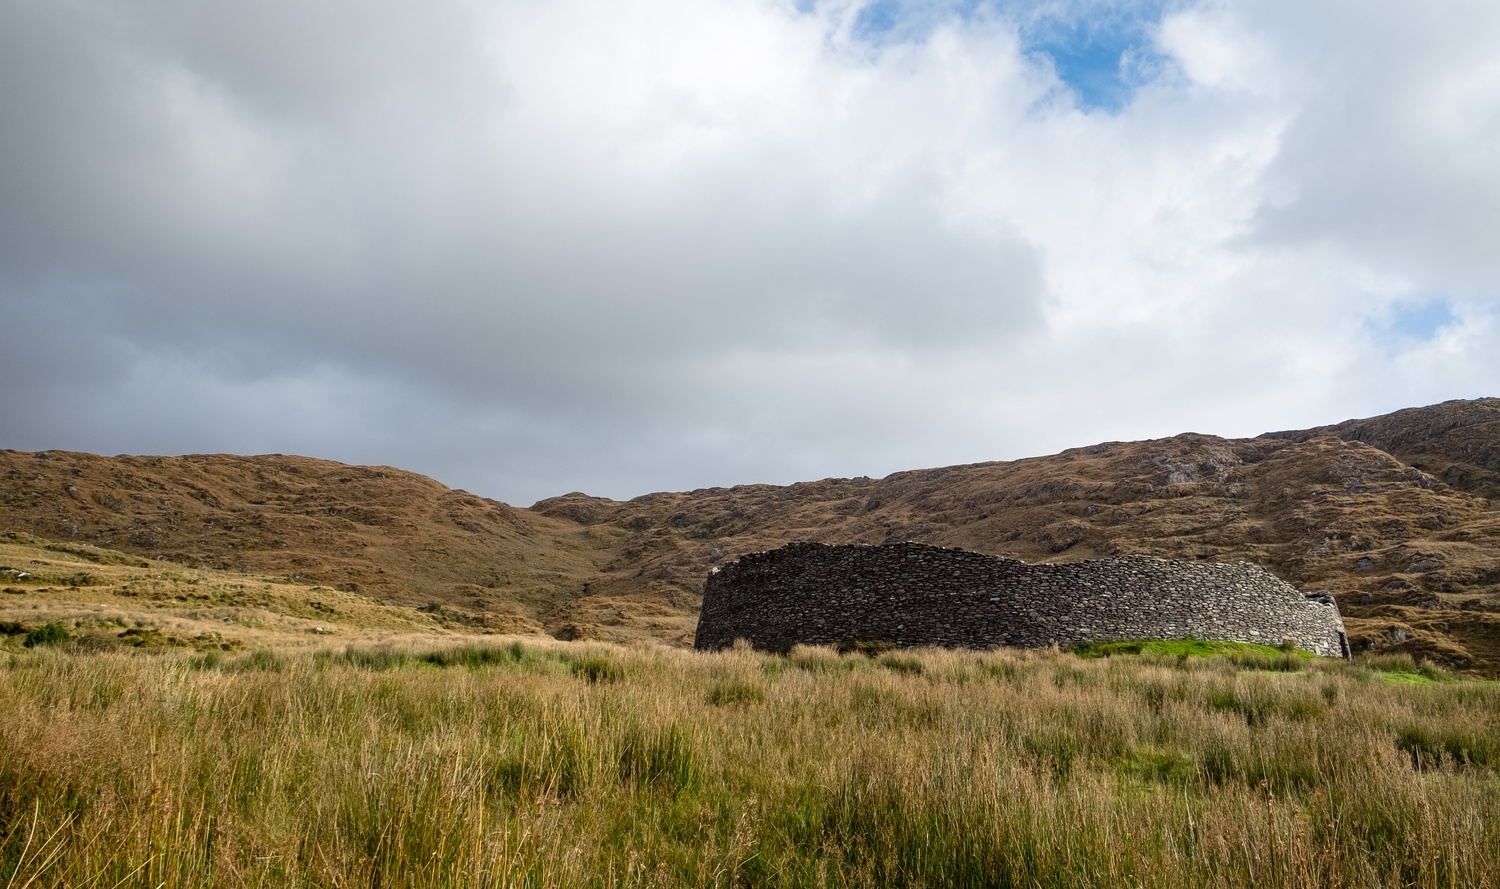 The old fort on a hill by Lee Stirling